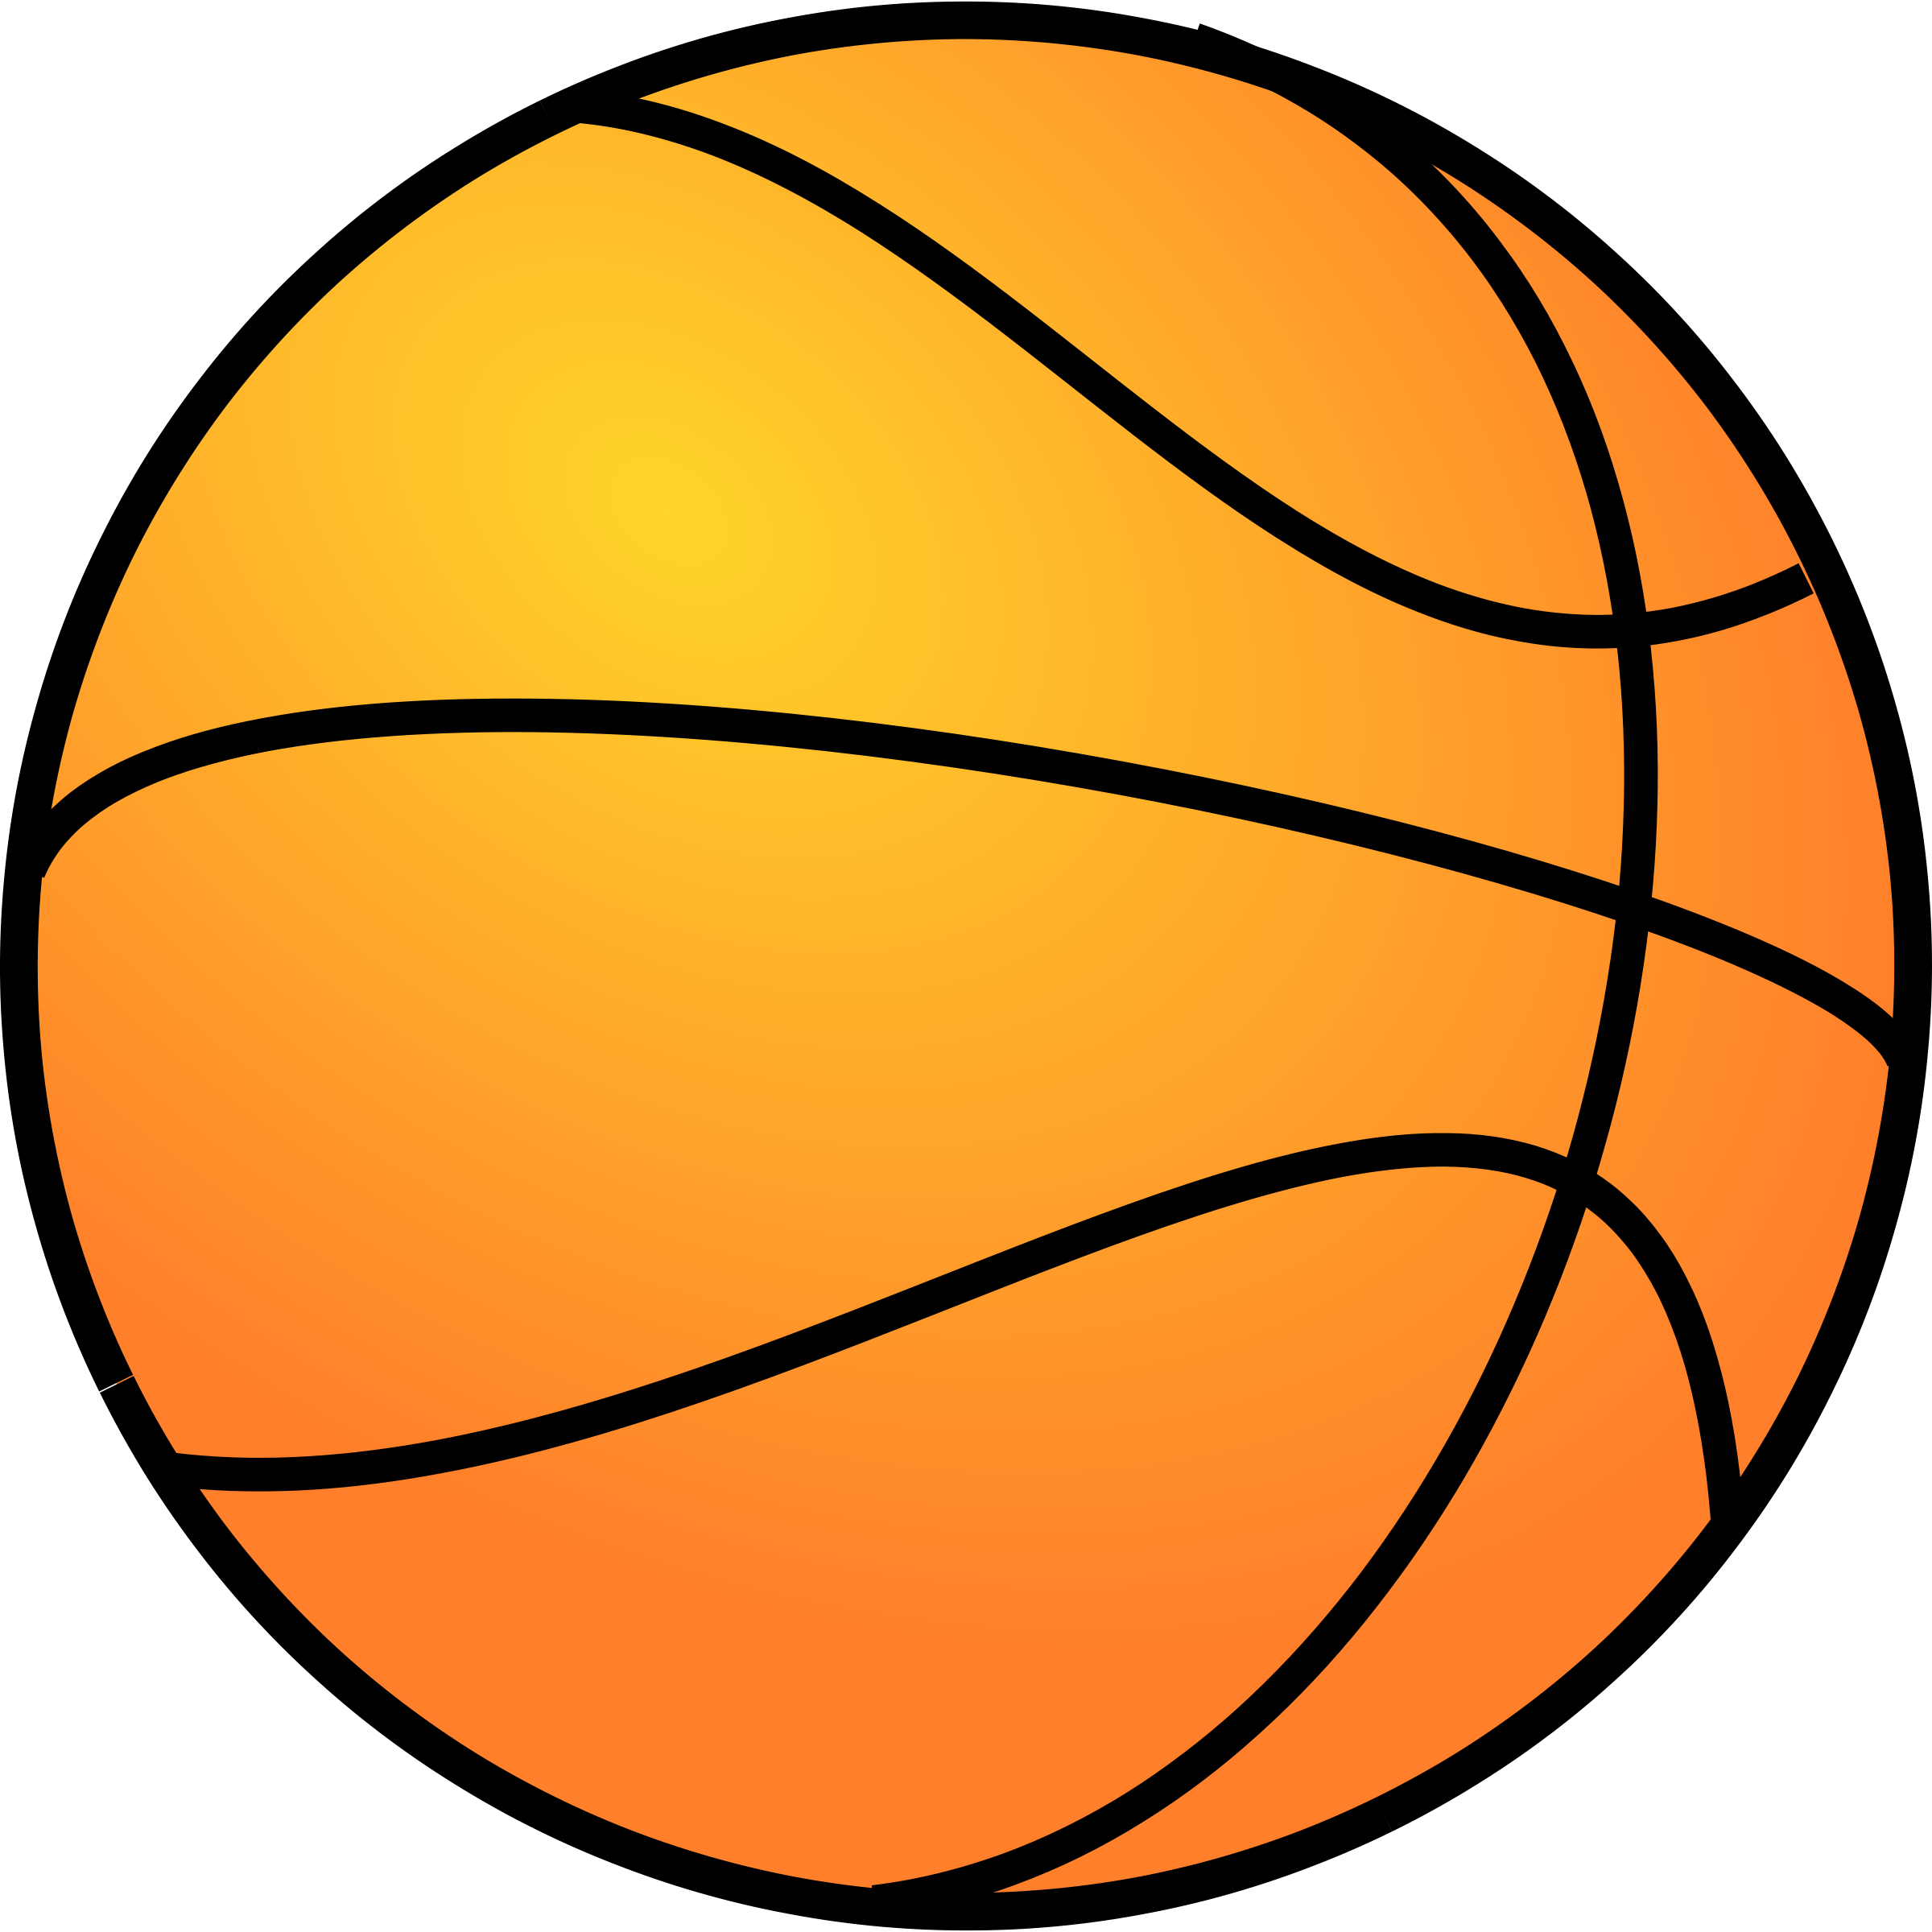 Basketball Ball Clipart Black And White | Clipart Panda - Free ...